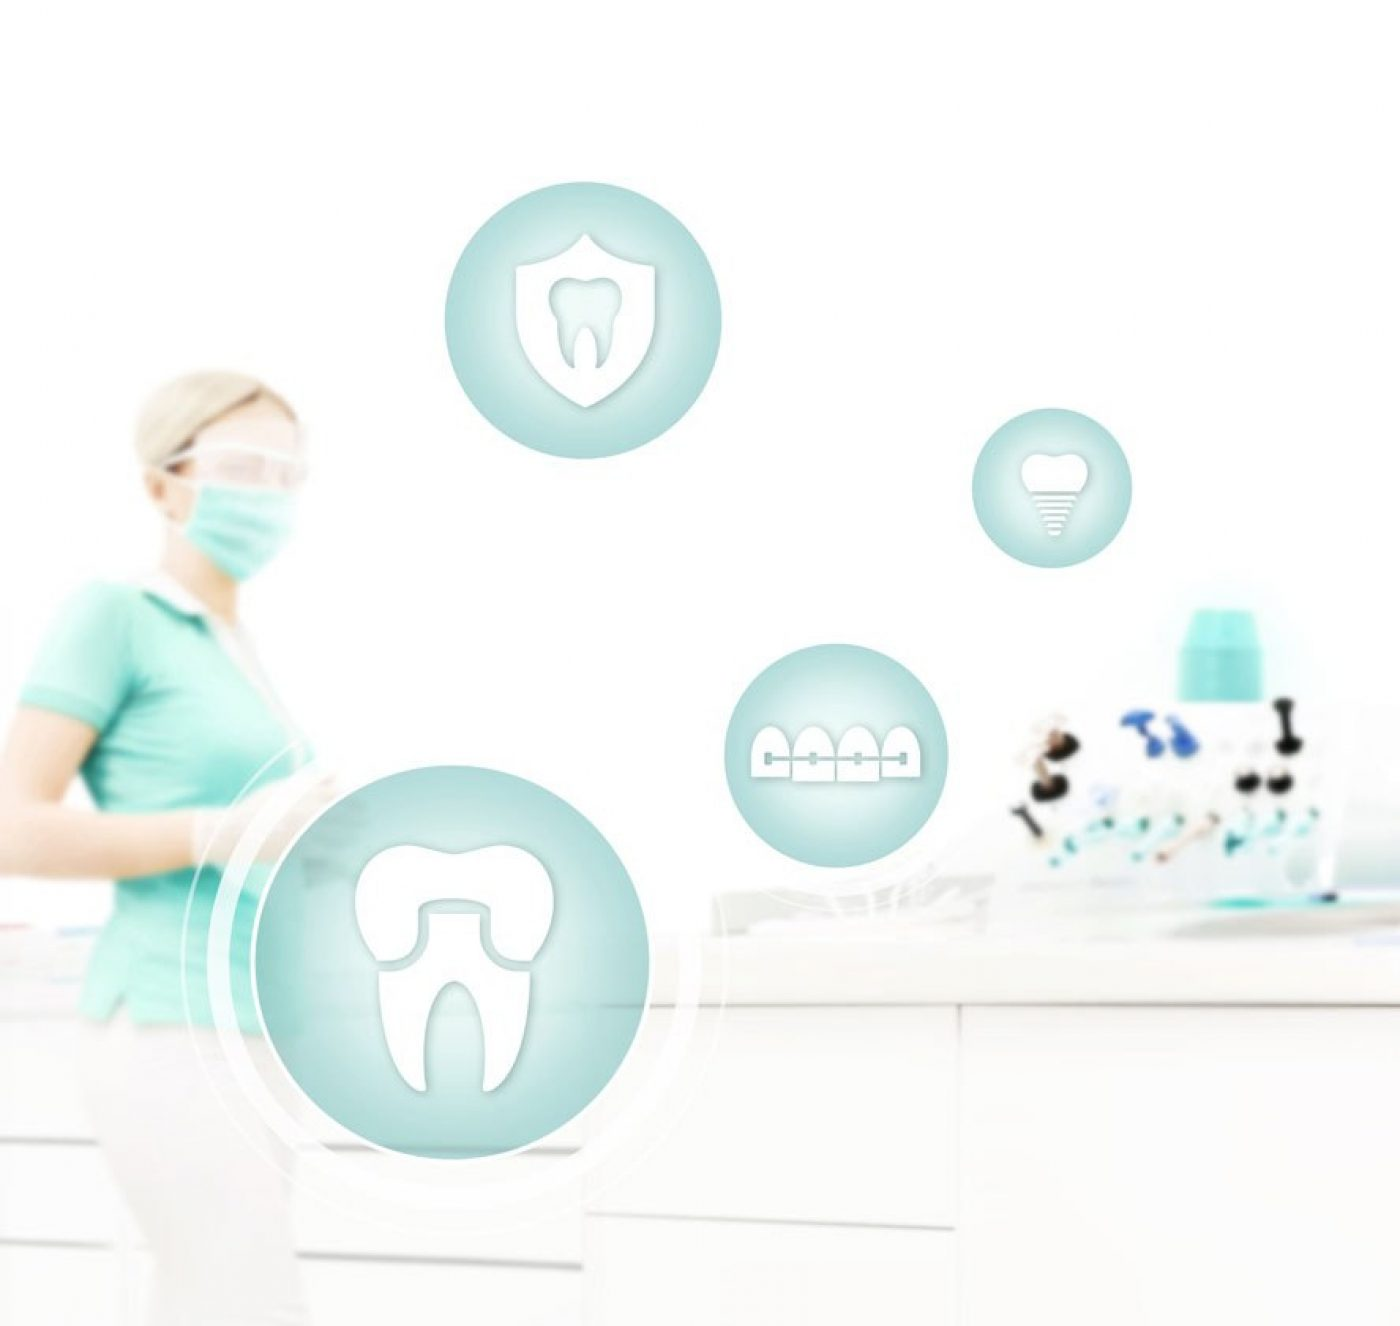 Tisbury Advicecare Commondentalconditions